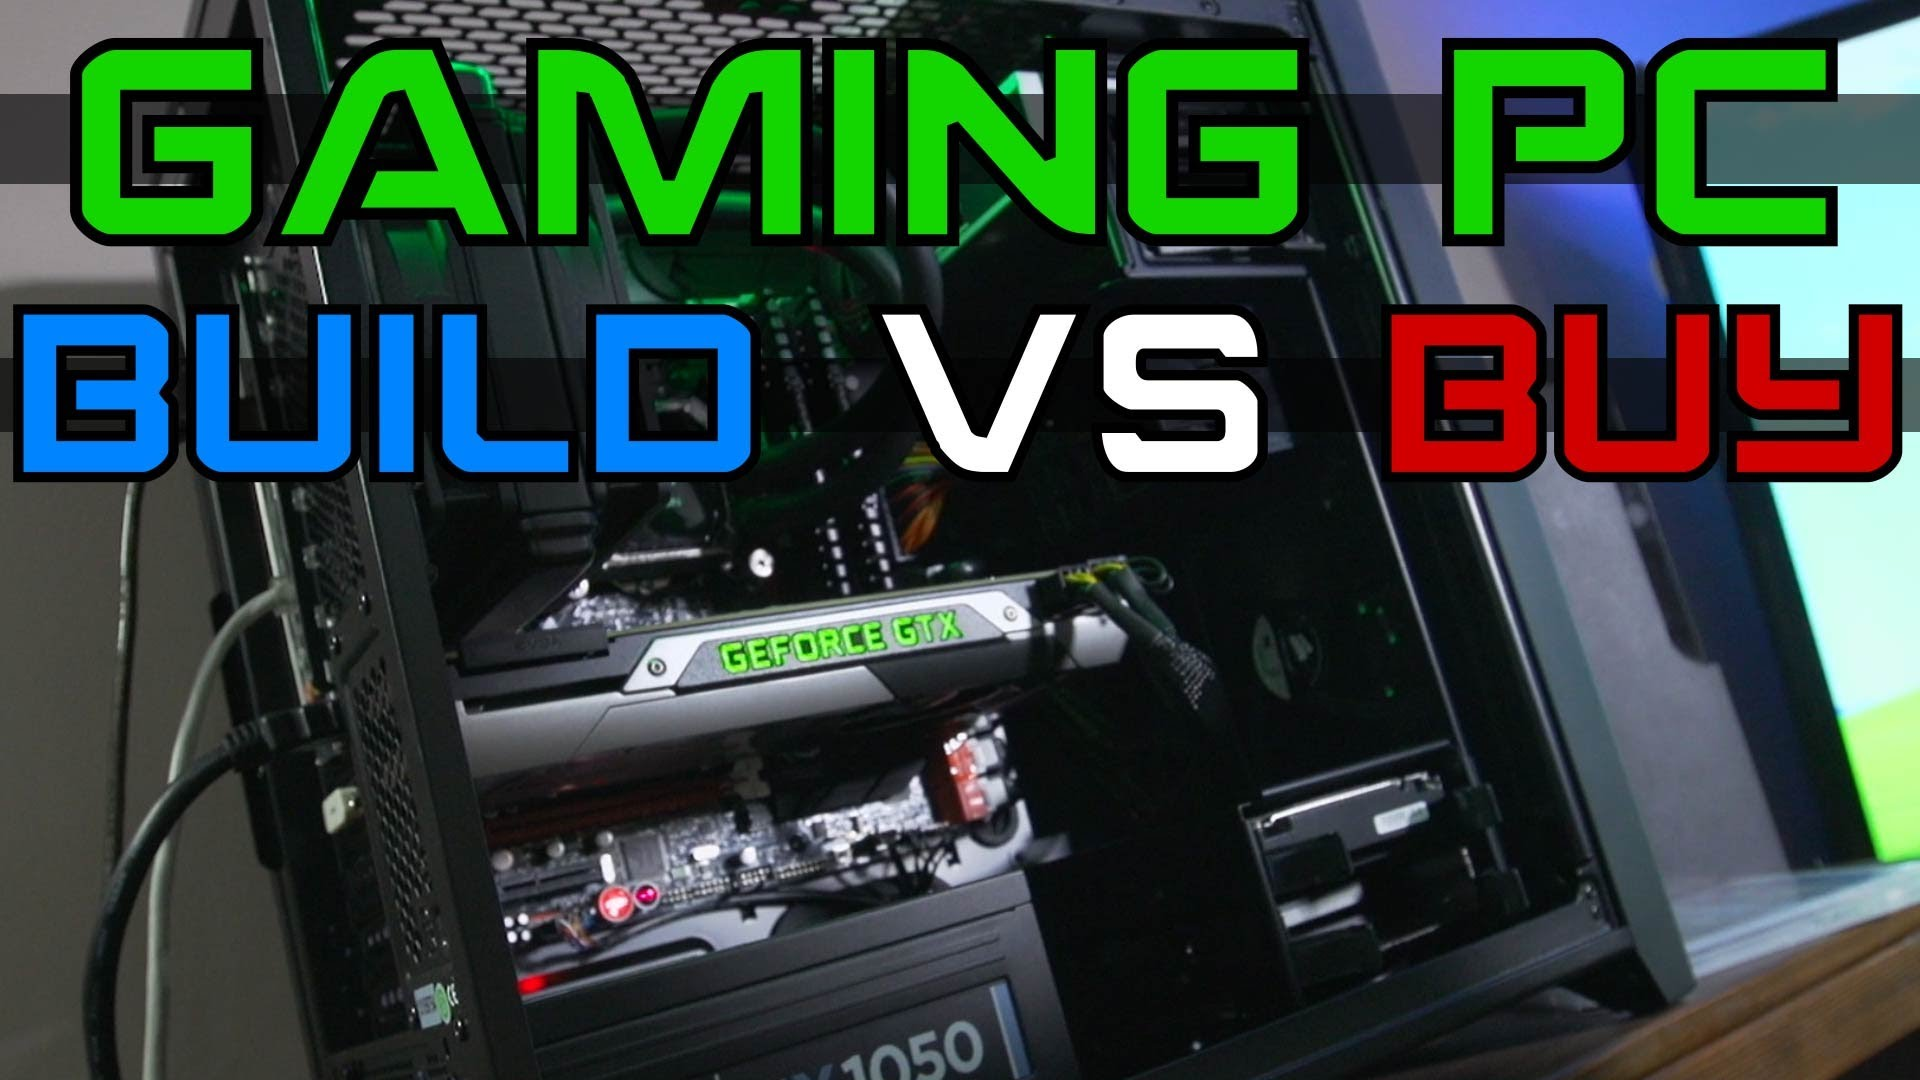 Building Pc Vs Buying A Pc